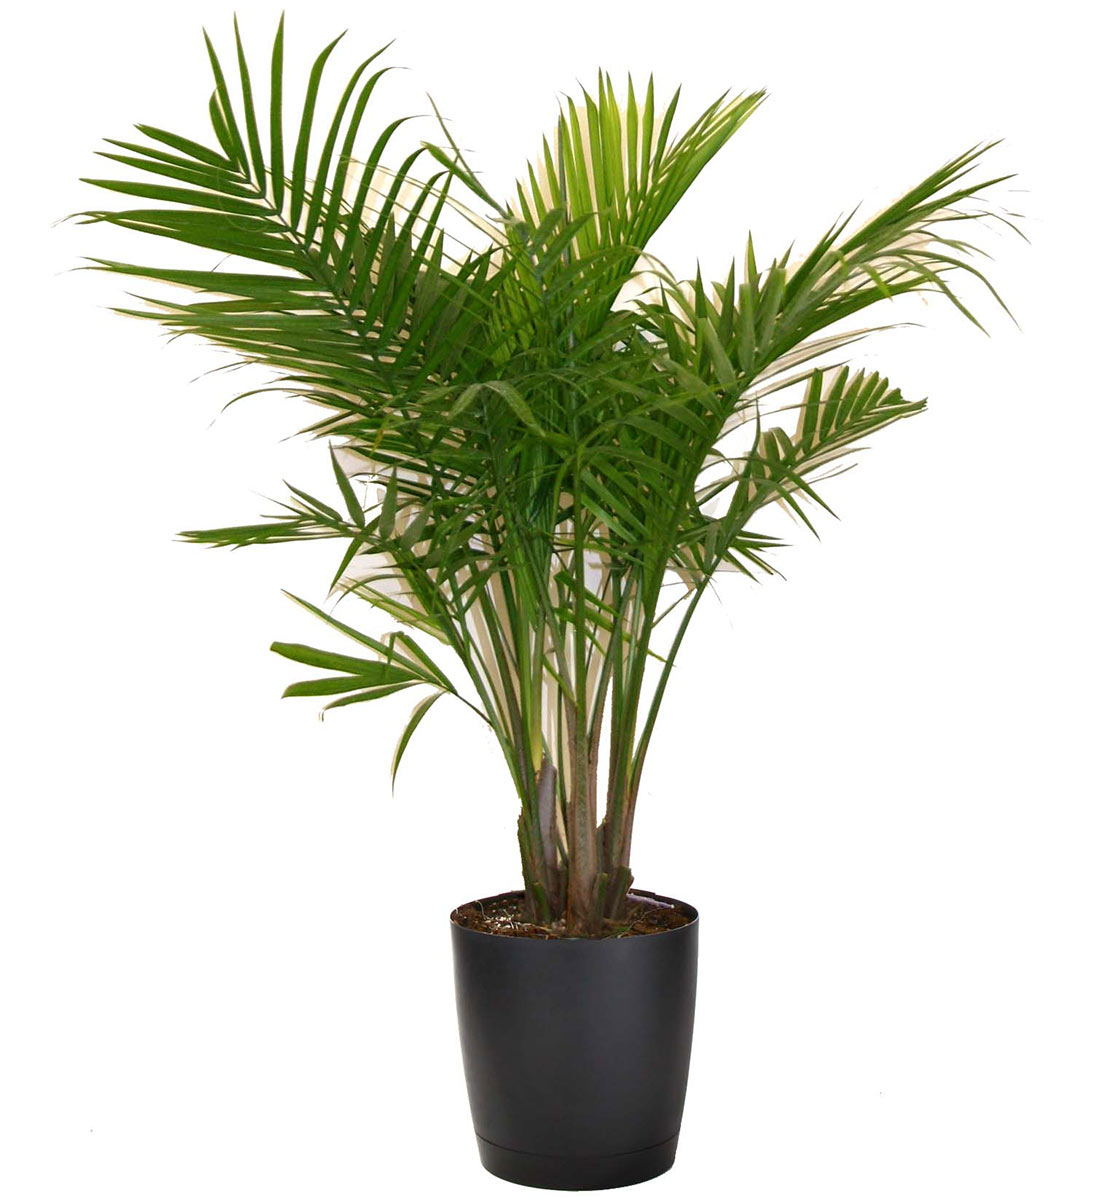 Small Household Plants Majesty Palm Vancouver Plant Rentals